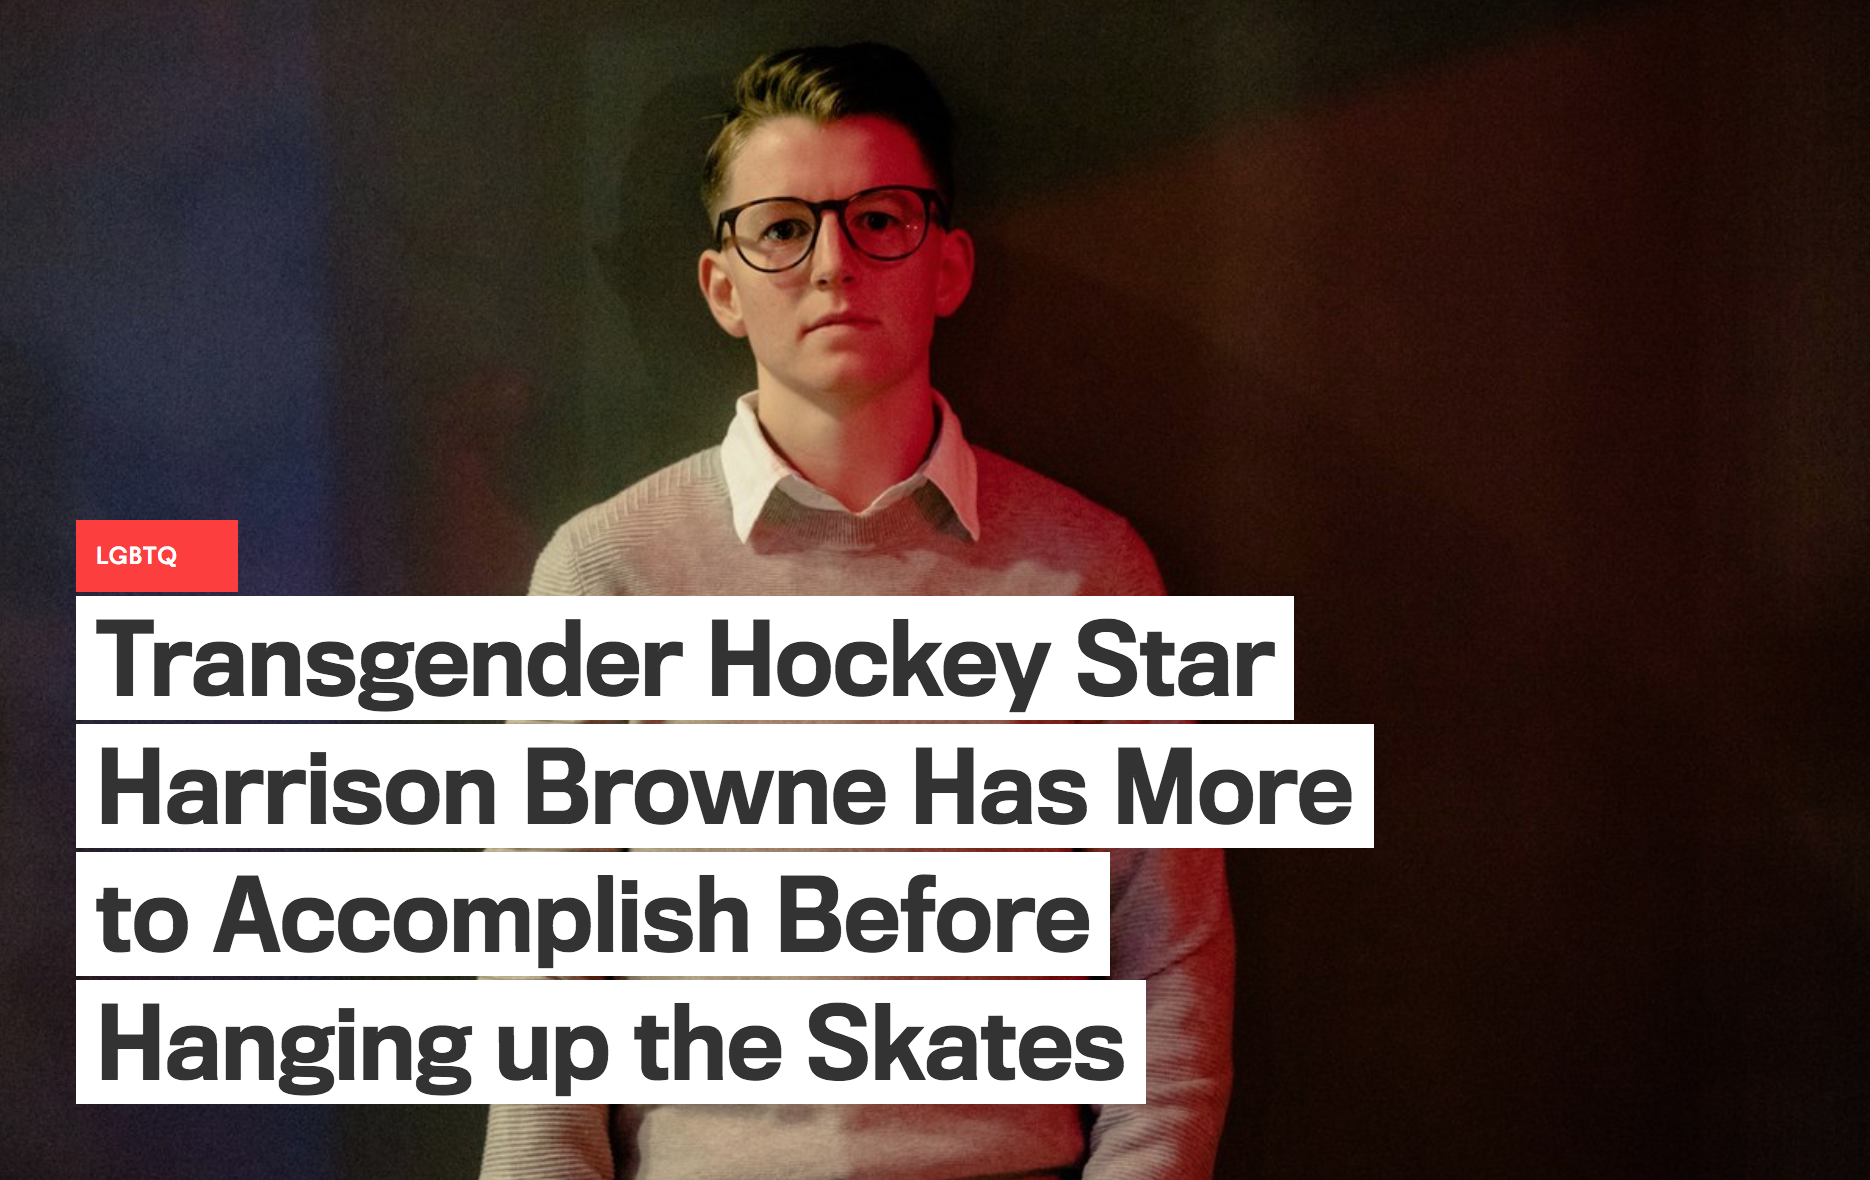 Transgender Hockey Star Harrison Browne Has More to Accomplish Before Hanging up the Skates